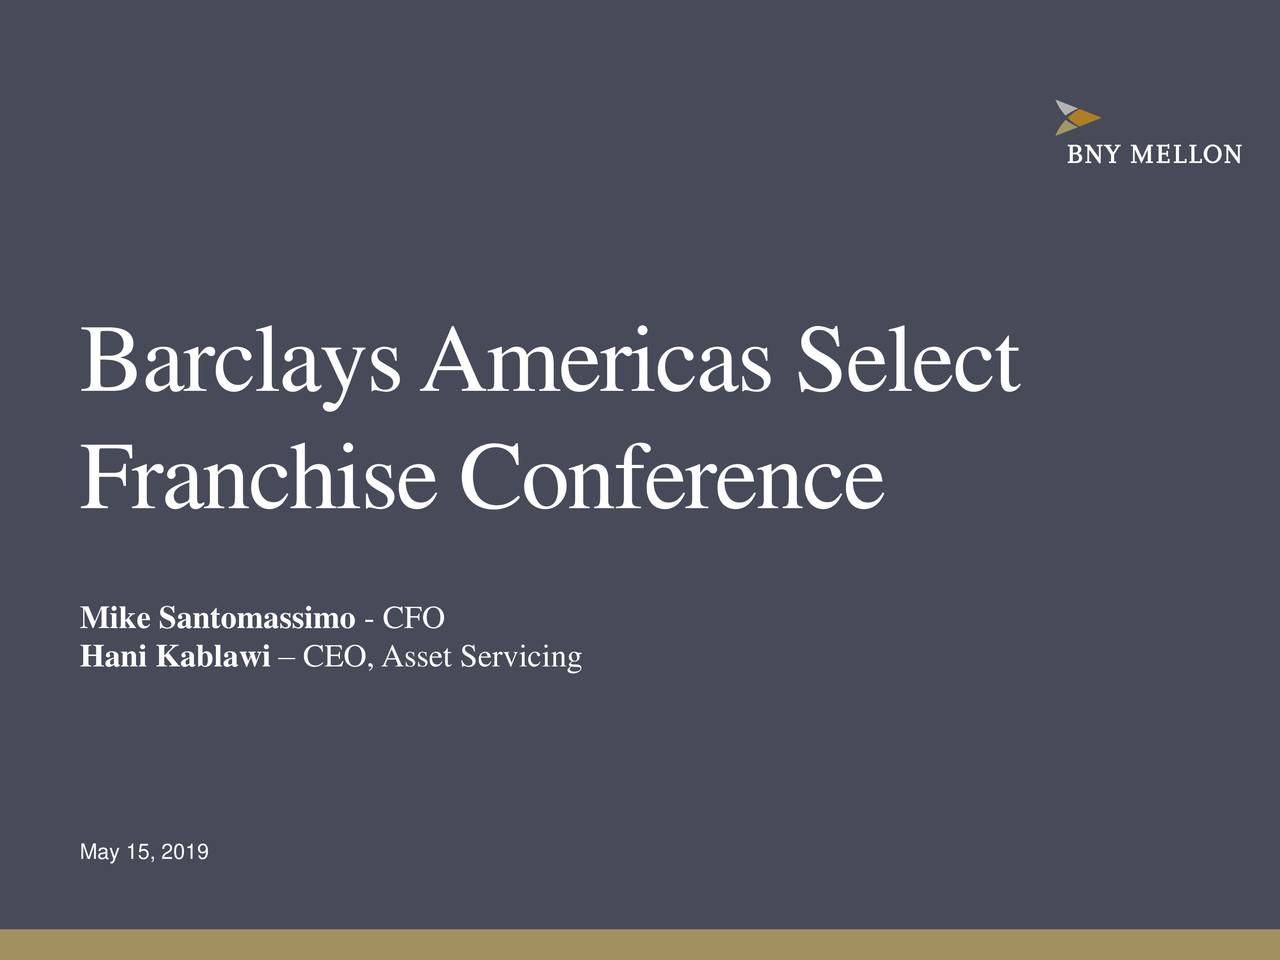 The Bank of New York Mellon (BK) Presents At Barclays Americas Select Franchise Conference - Slideshow